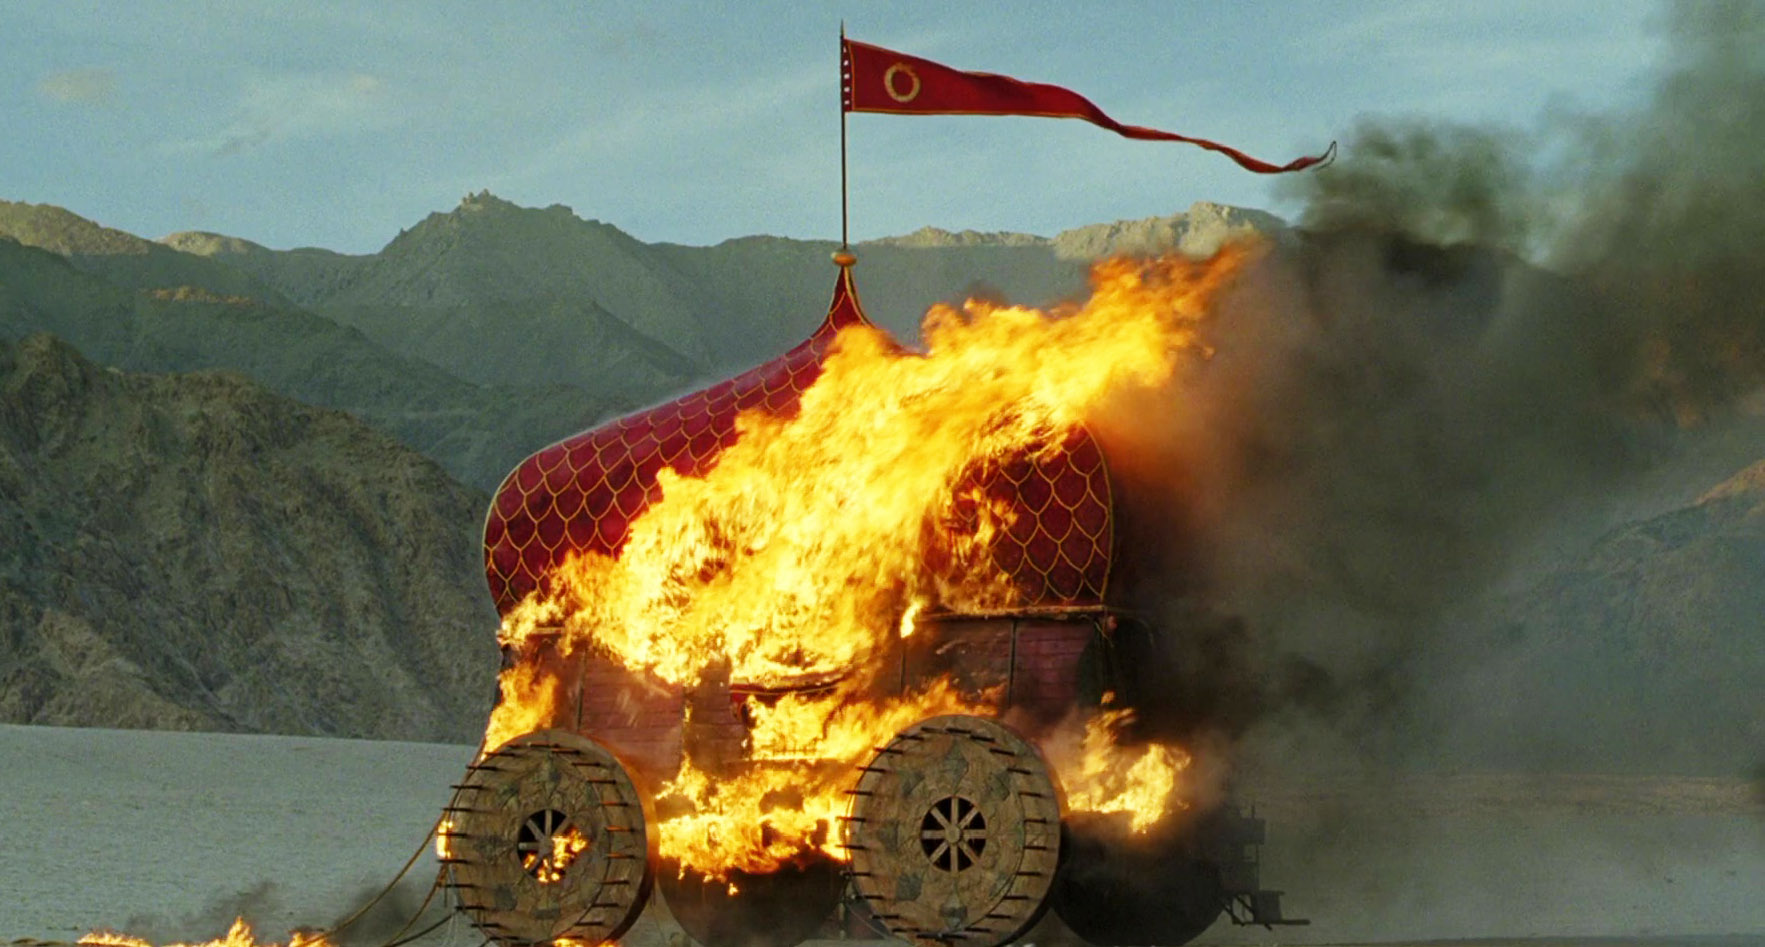 A still from the film of the palenquin carriage burning